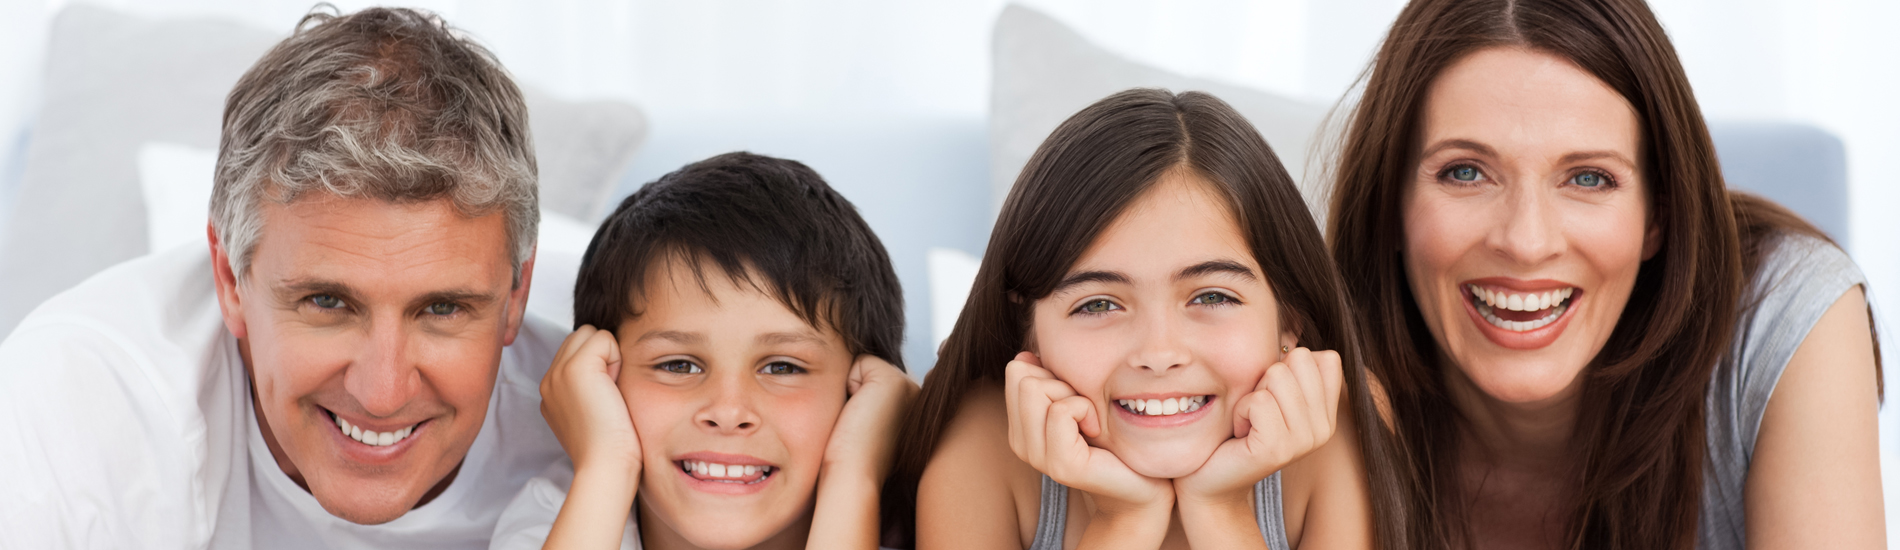 Dominican Dentist – Affordable Dental Services